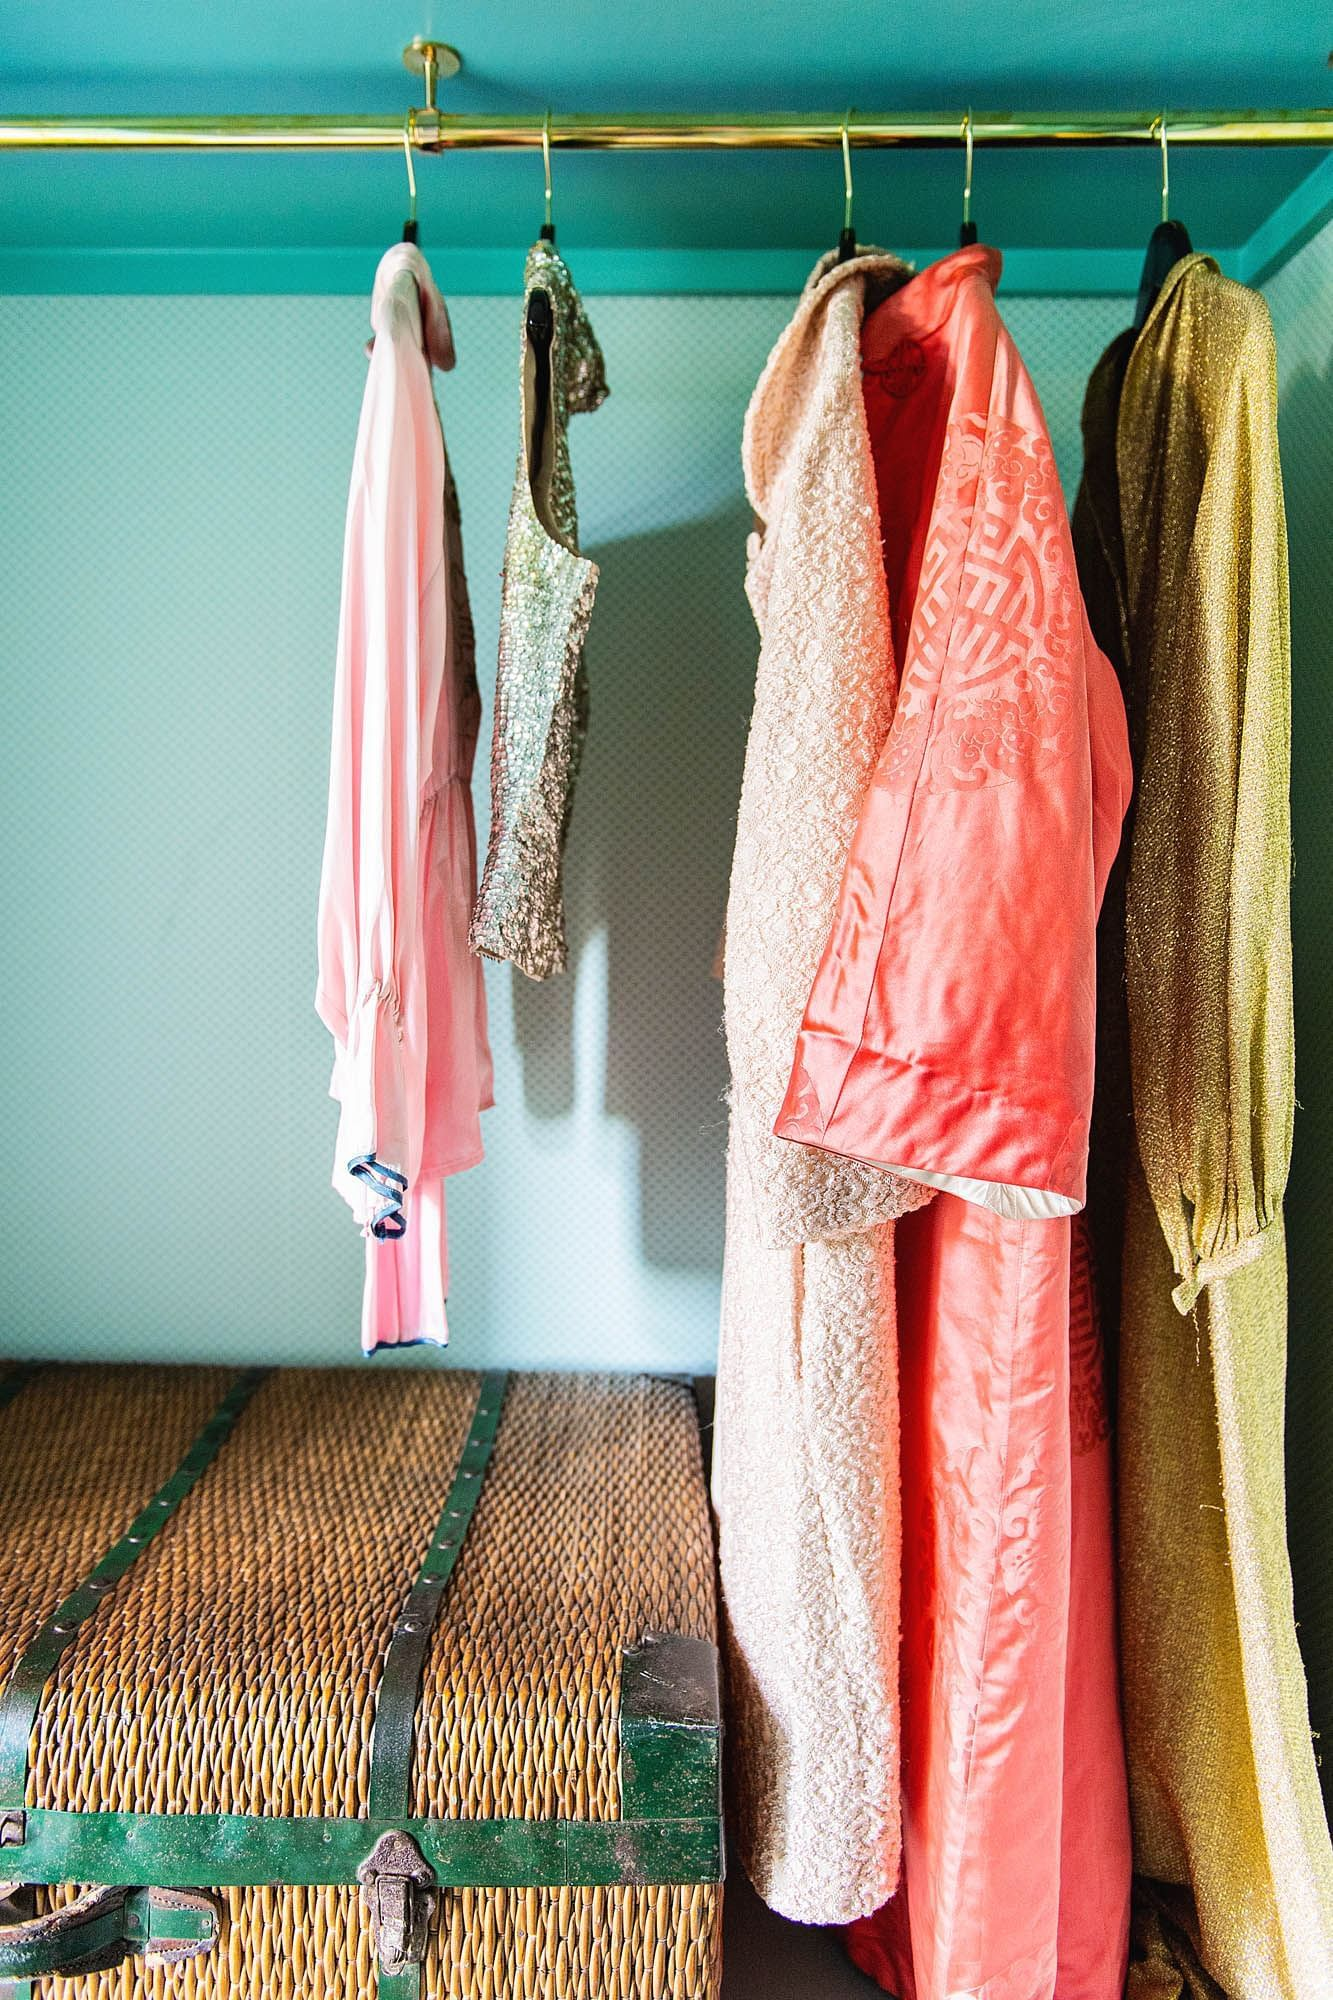 robes hanging in closet